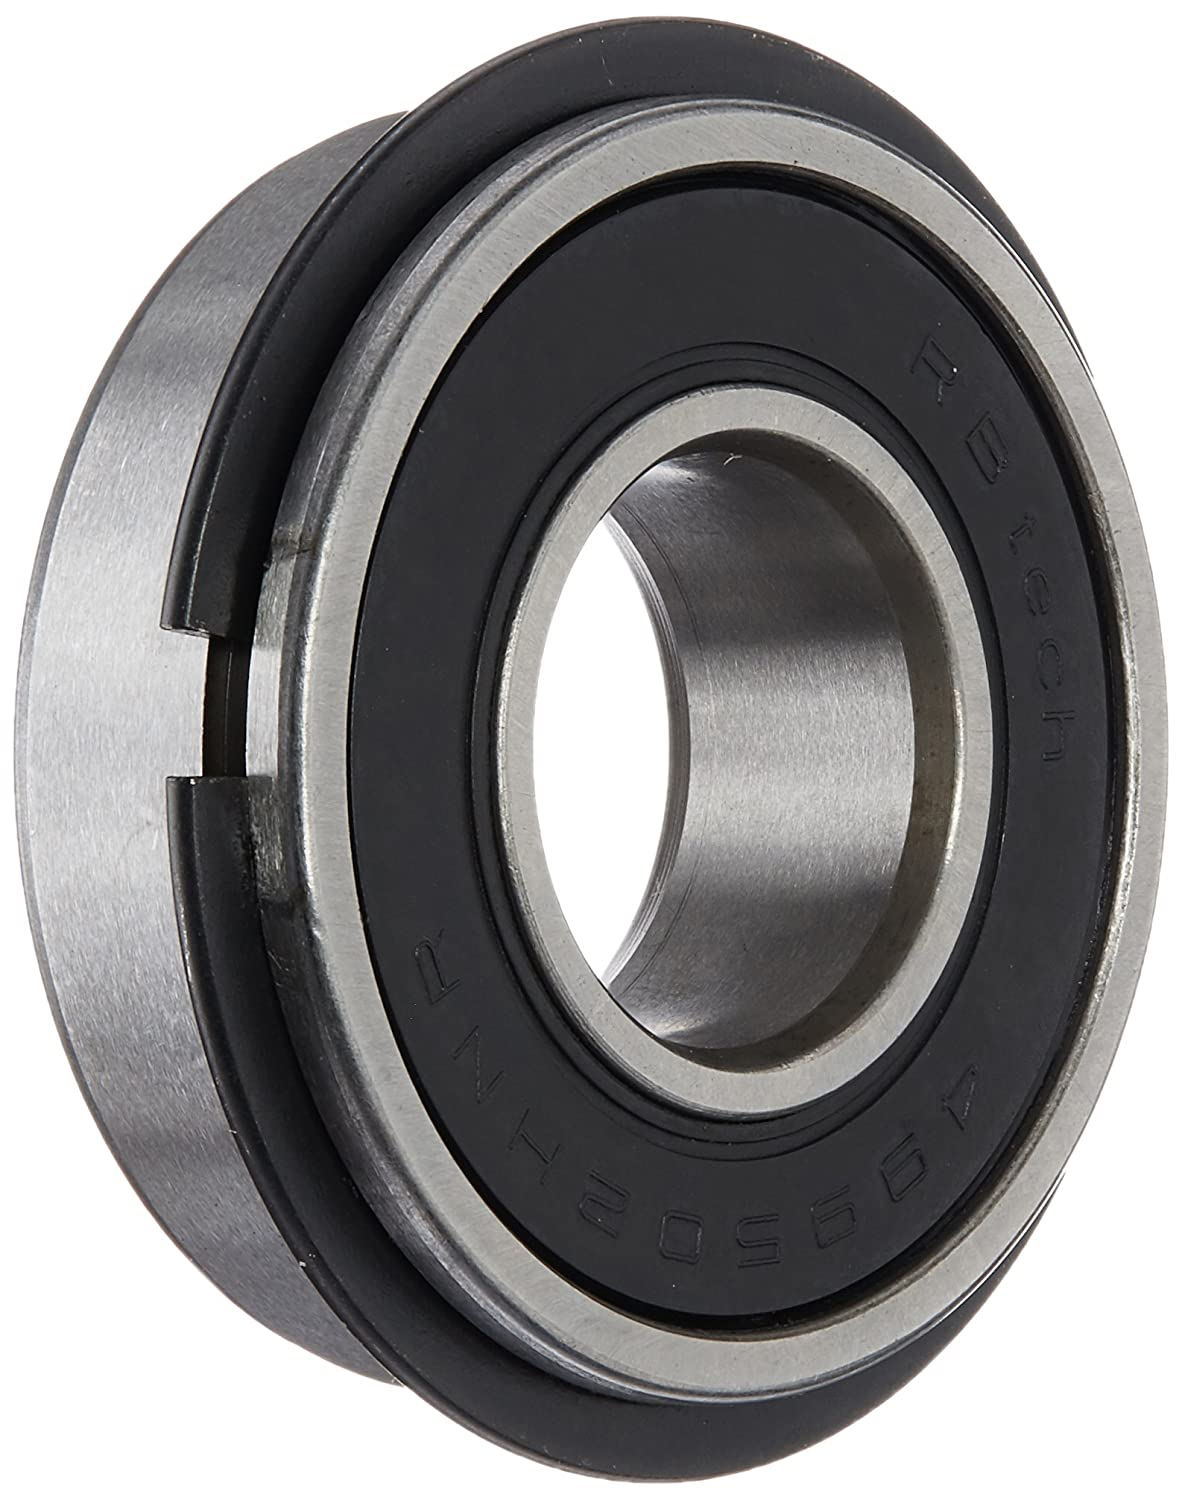 Prime Line 7-04294 Bearing Replacement for Model Dixon 5028 Murray 680106, 499502H Snapper 1-0756 Ariens 05415100, 05416200 Troy Bilt 1728255, 1185121